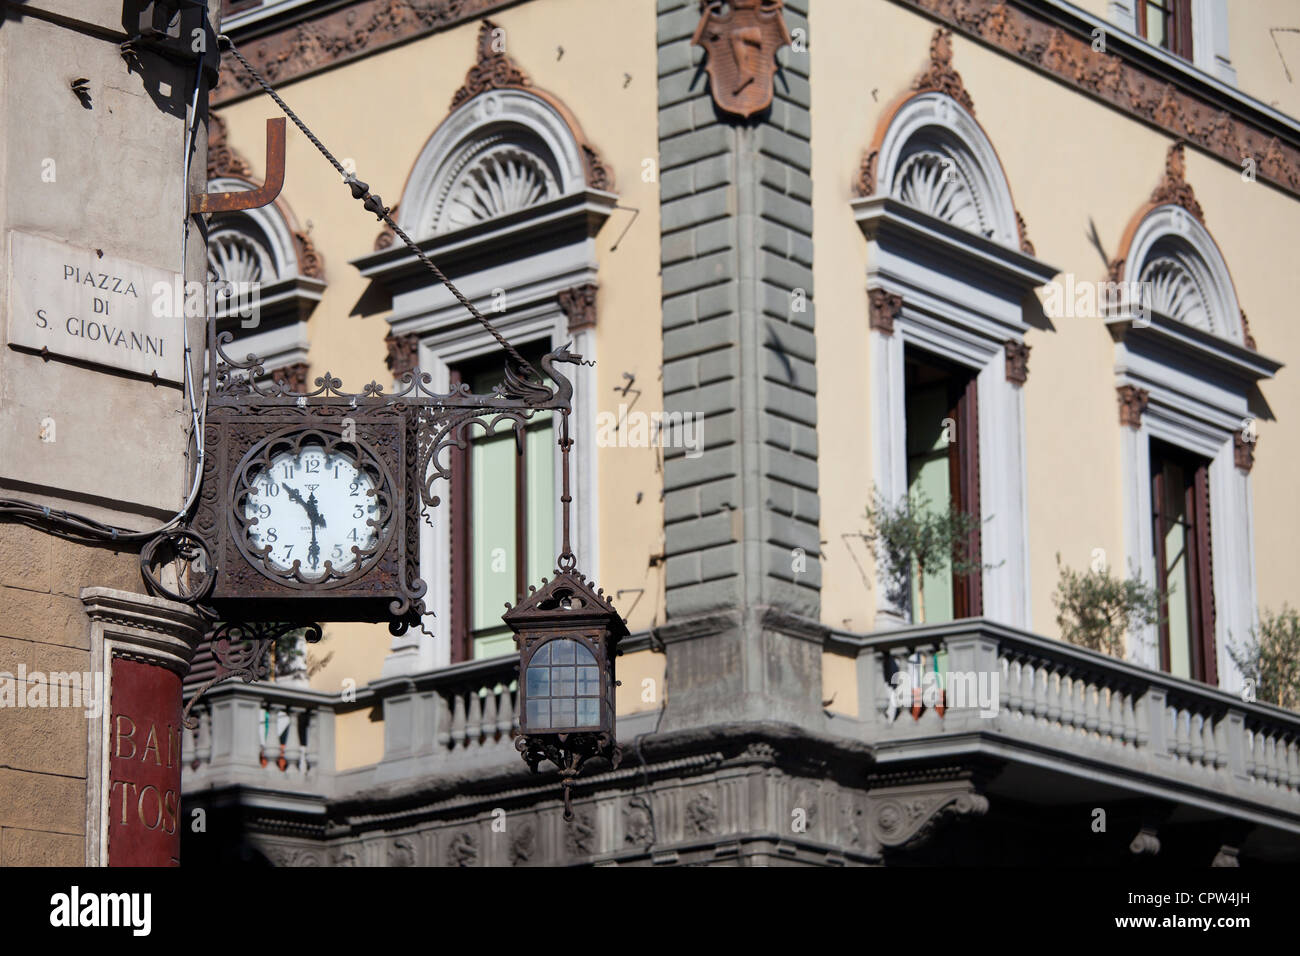 Ancient clock with Roman numerals on Banca Toscana in Piazza di San Giovanni and via de Martelli in Florence, Tuscany, - Stock Image